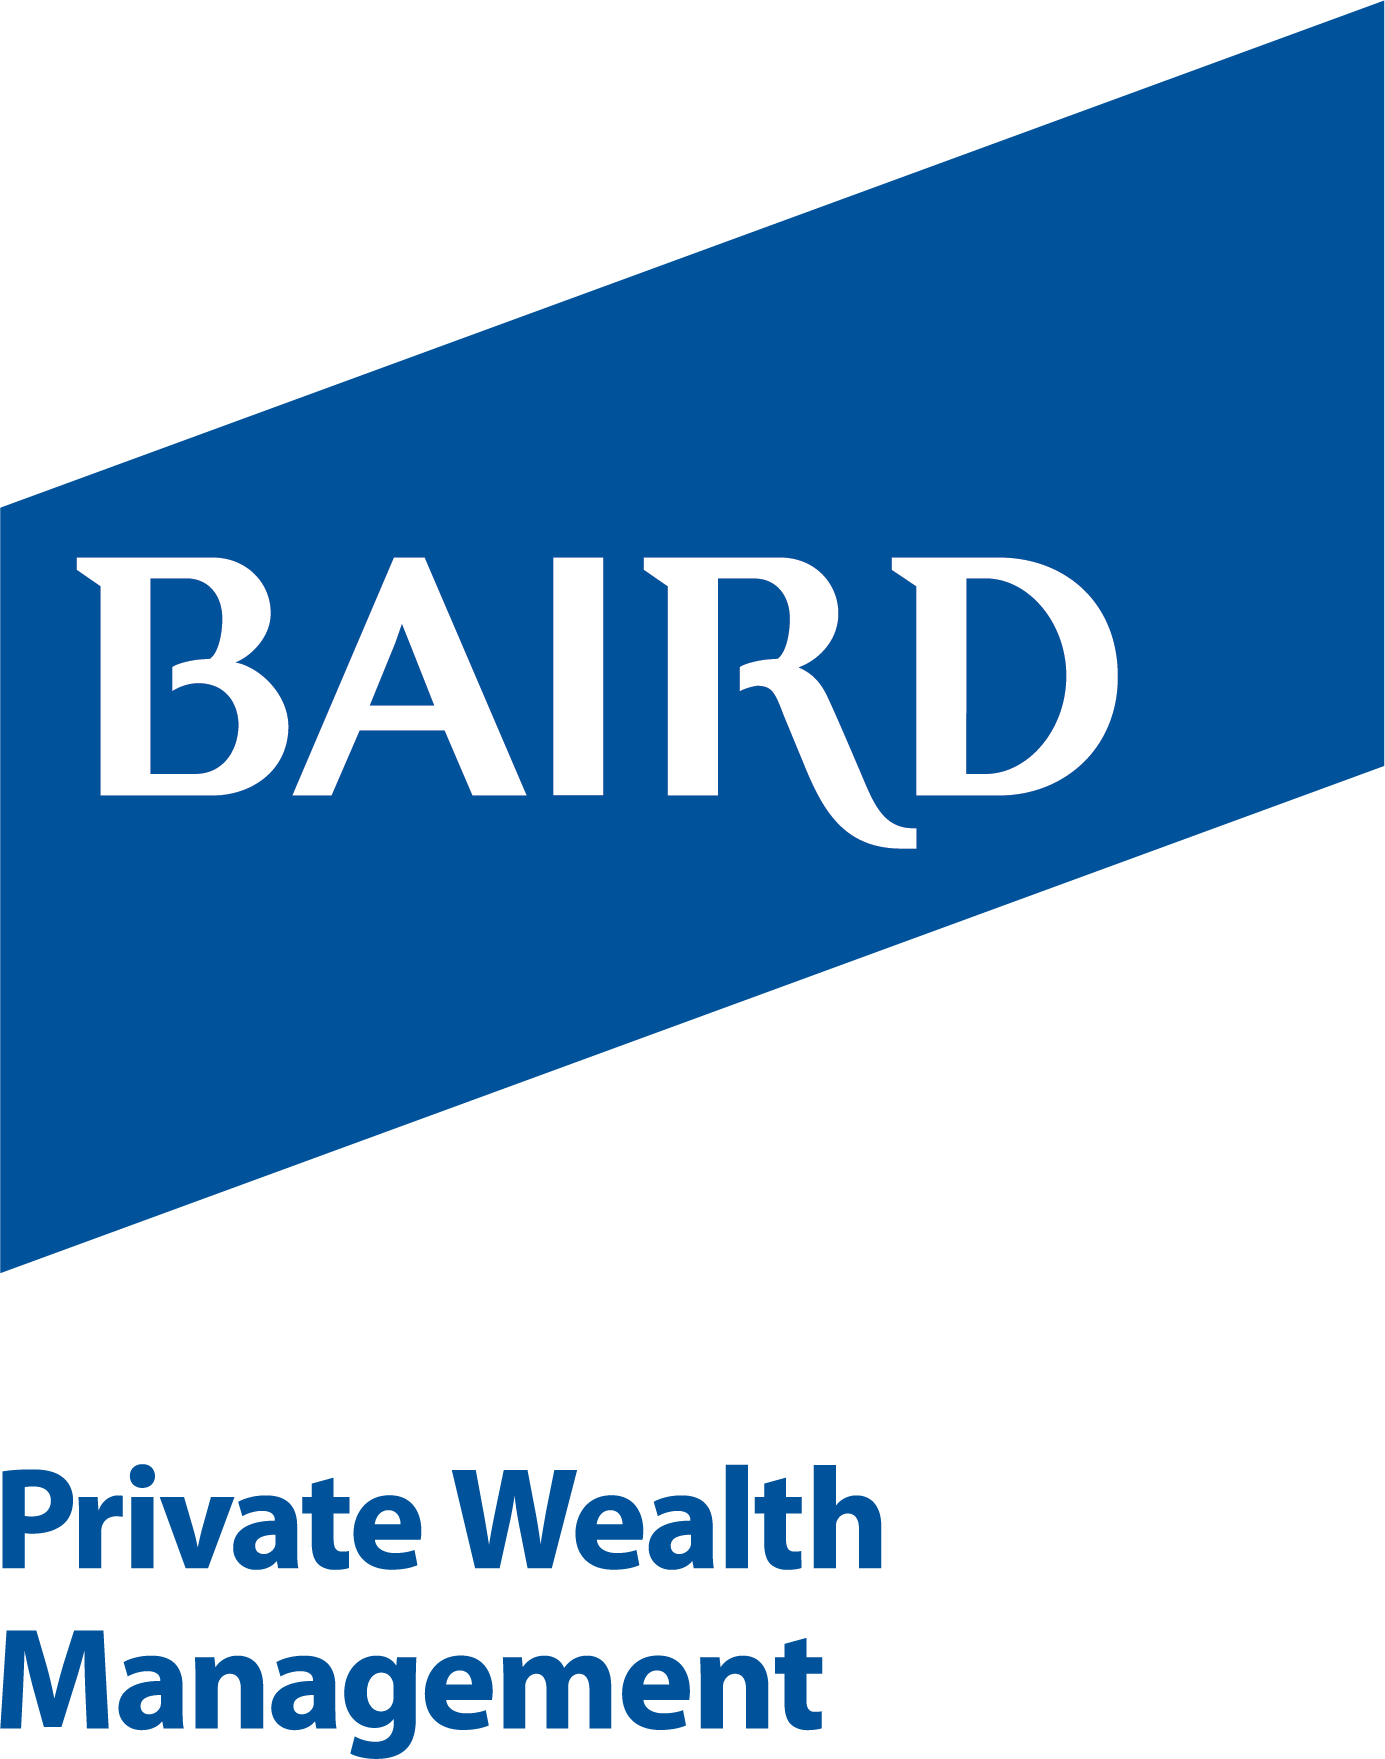 Baird Private Wealth Management logo